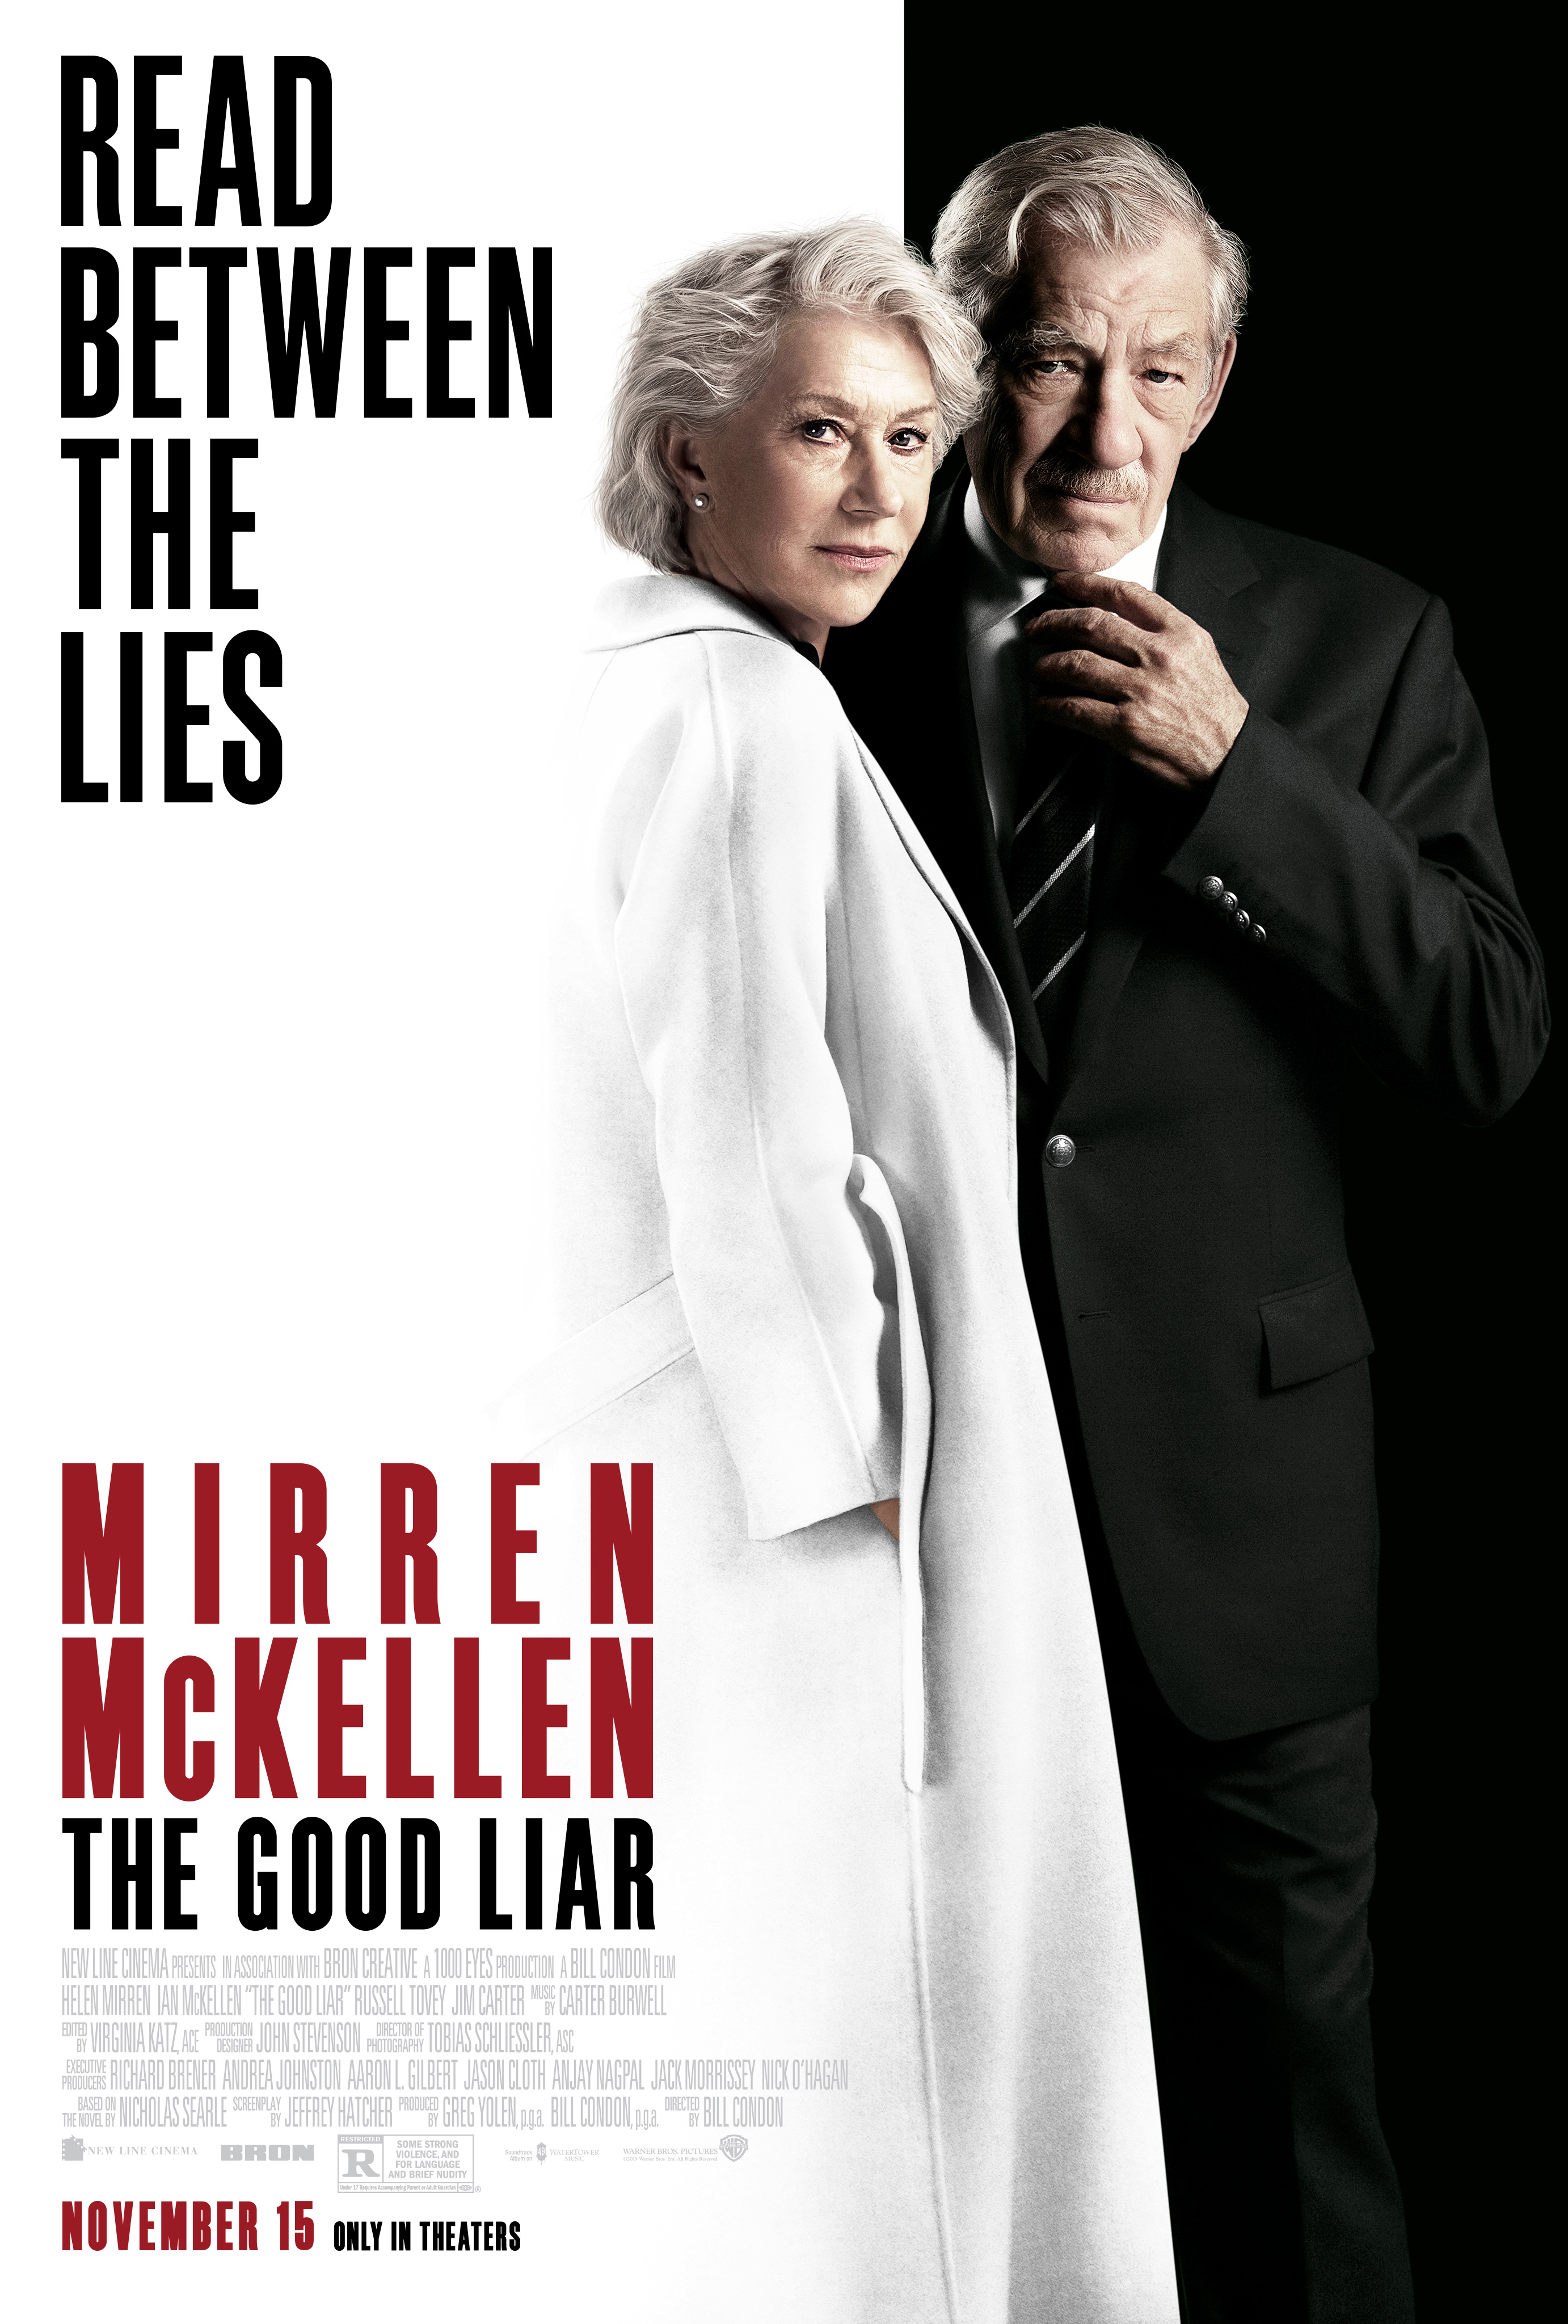 Market Day Matinee: The Good Liar